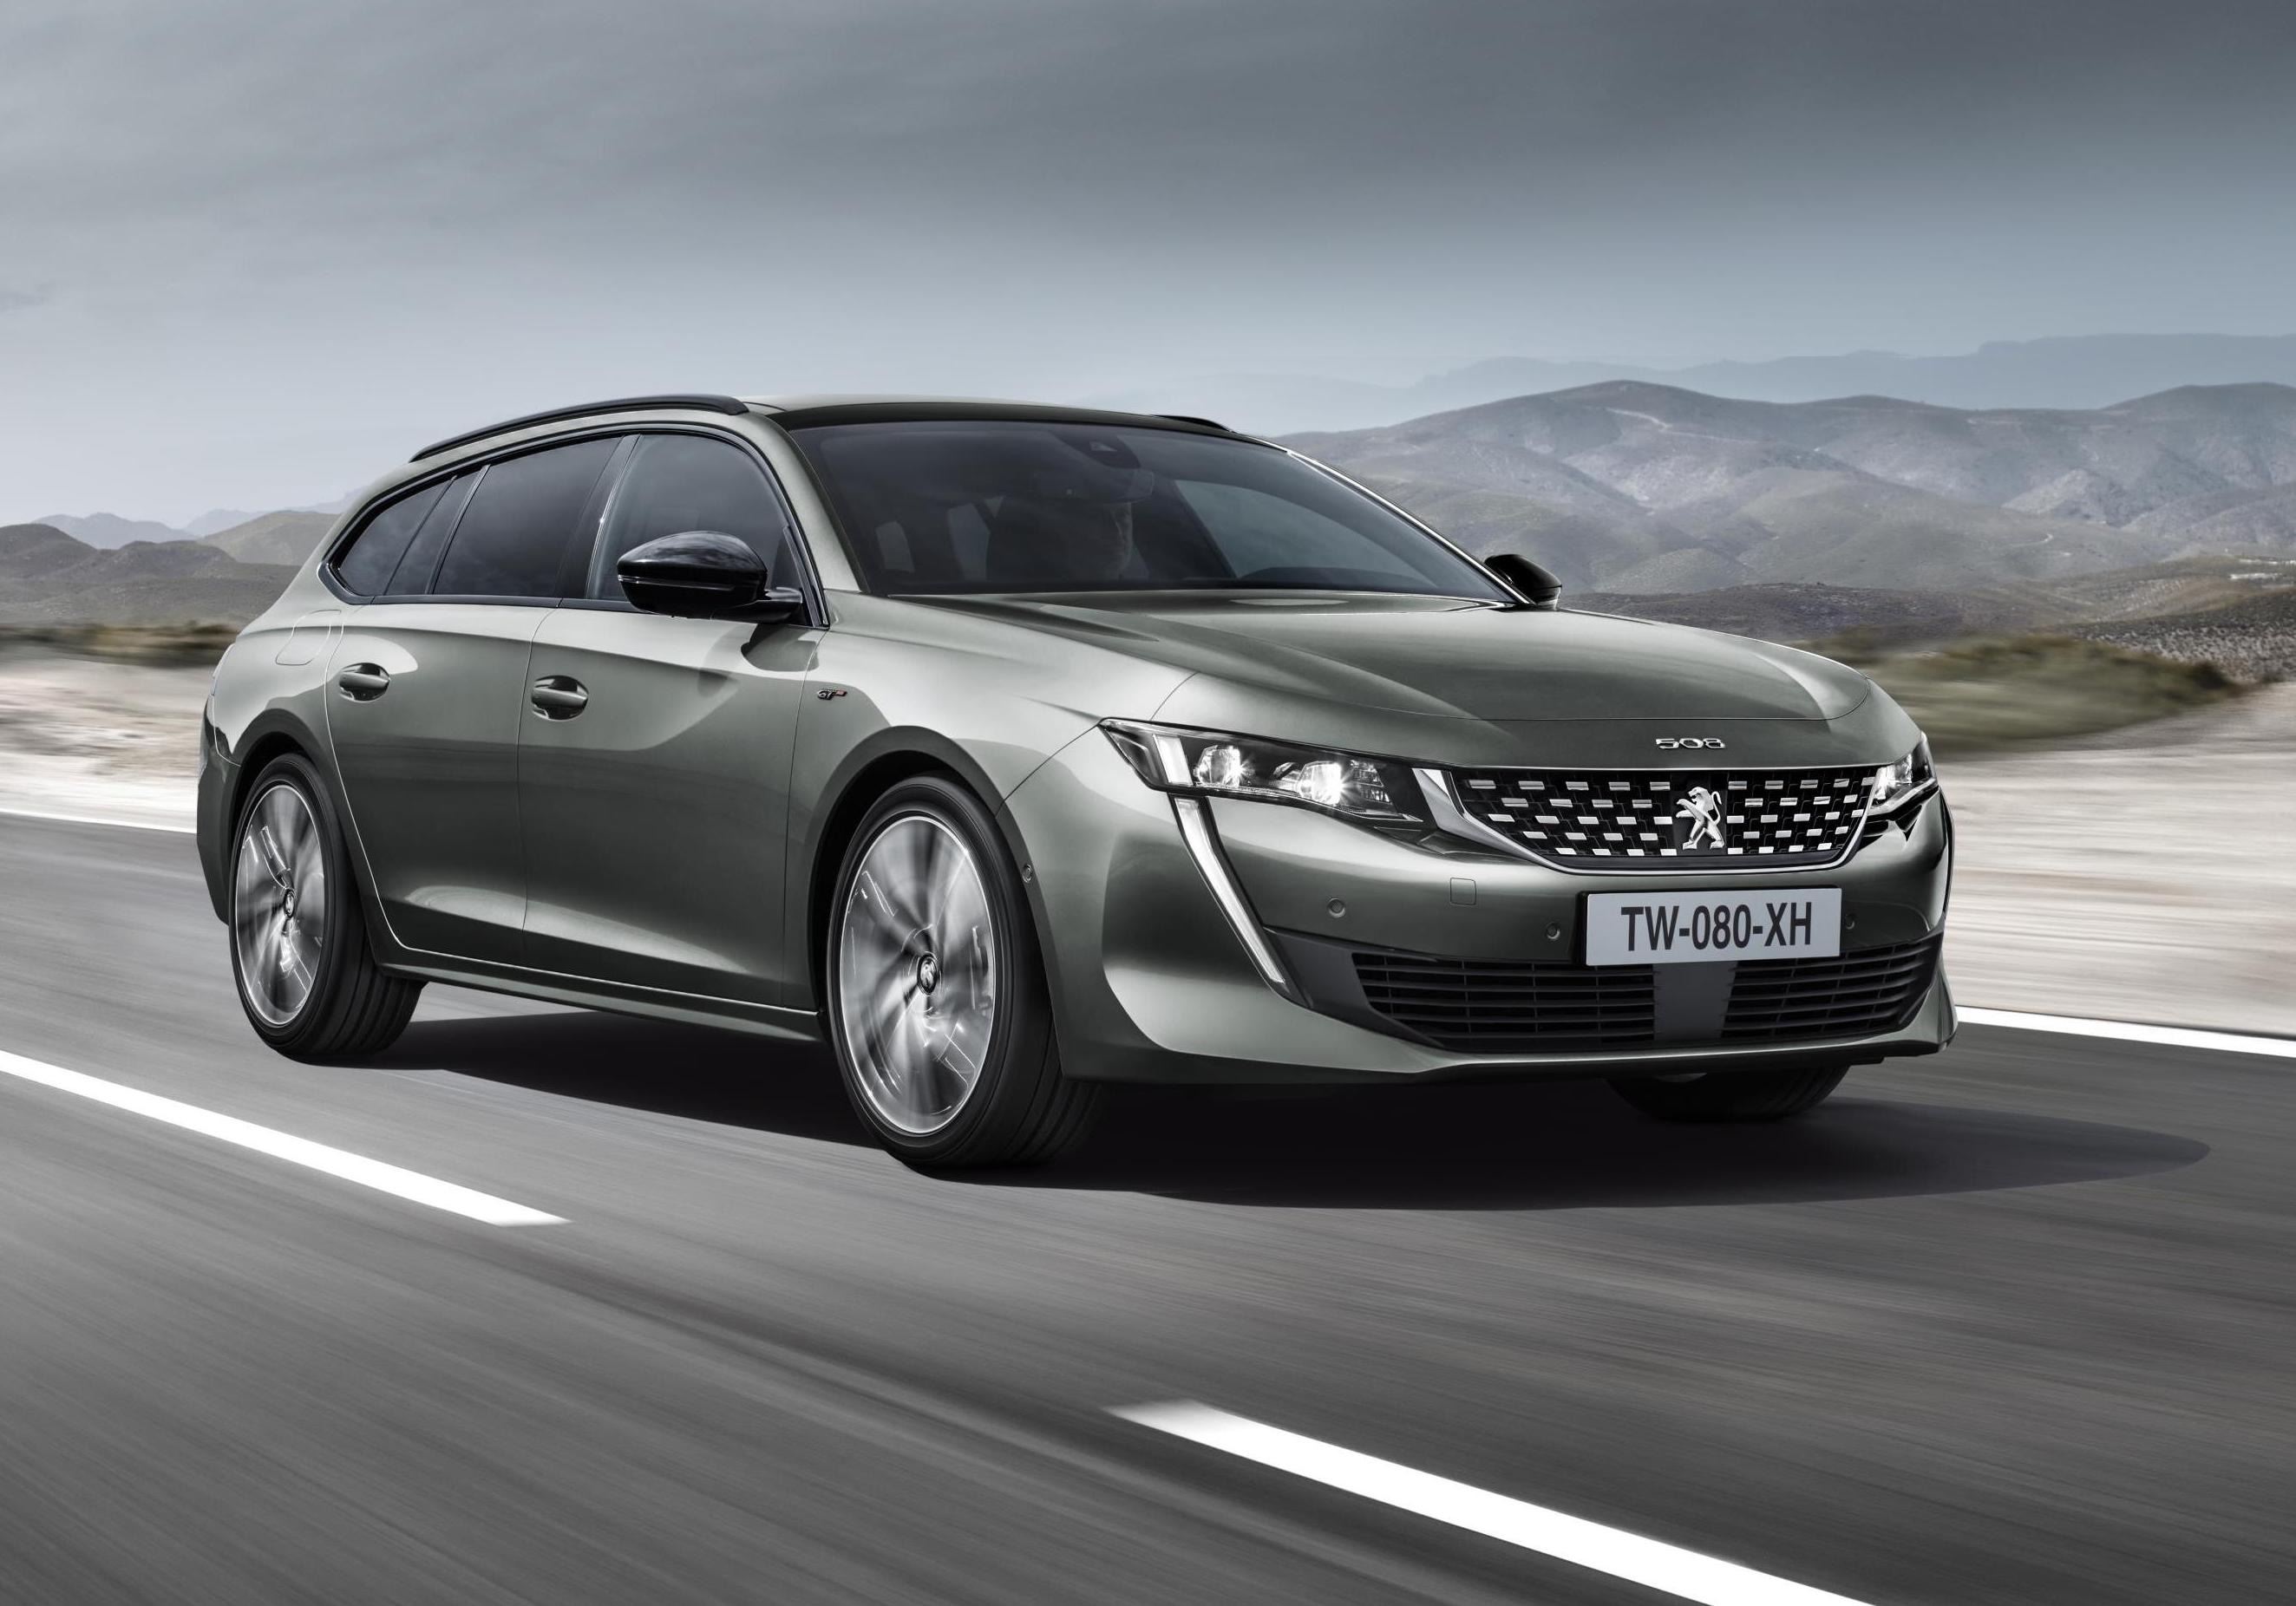 2019 Peugeot 508 Sw Wagon Revealed Performancedrive